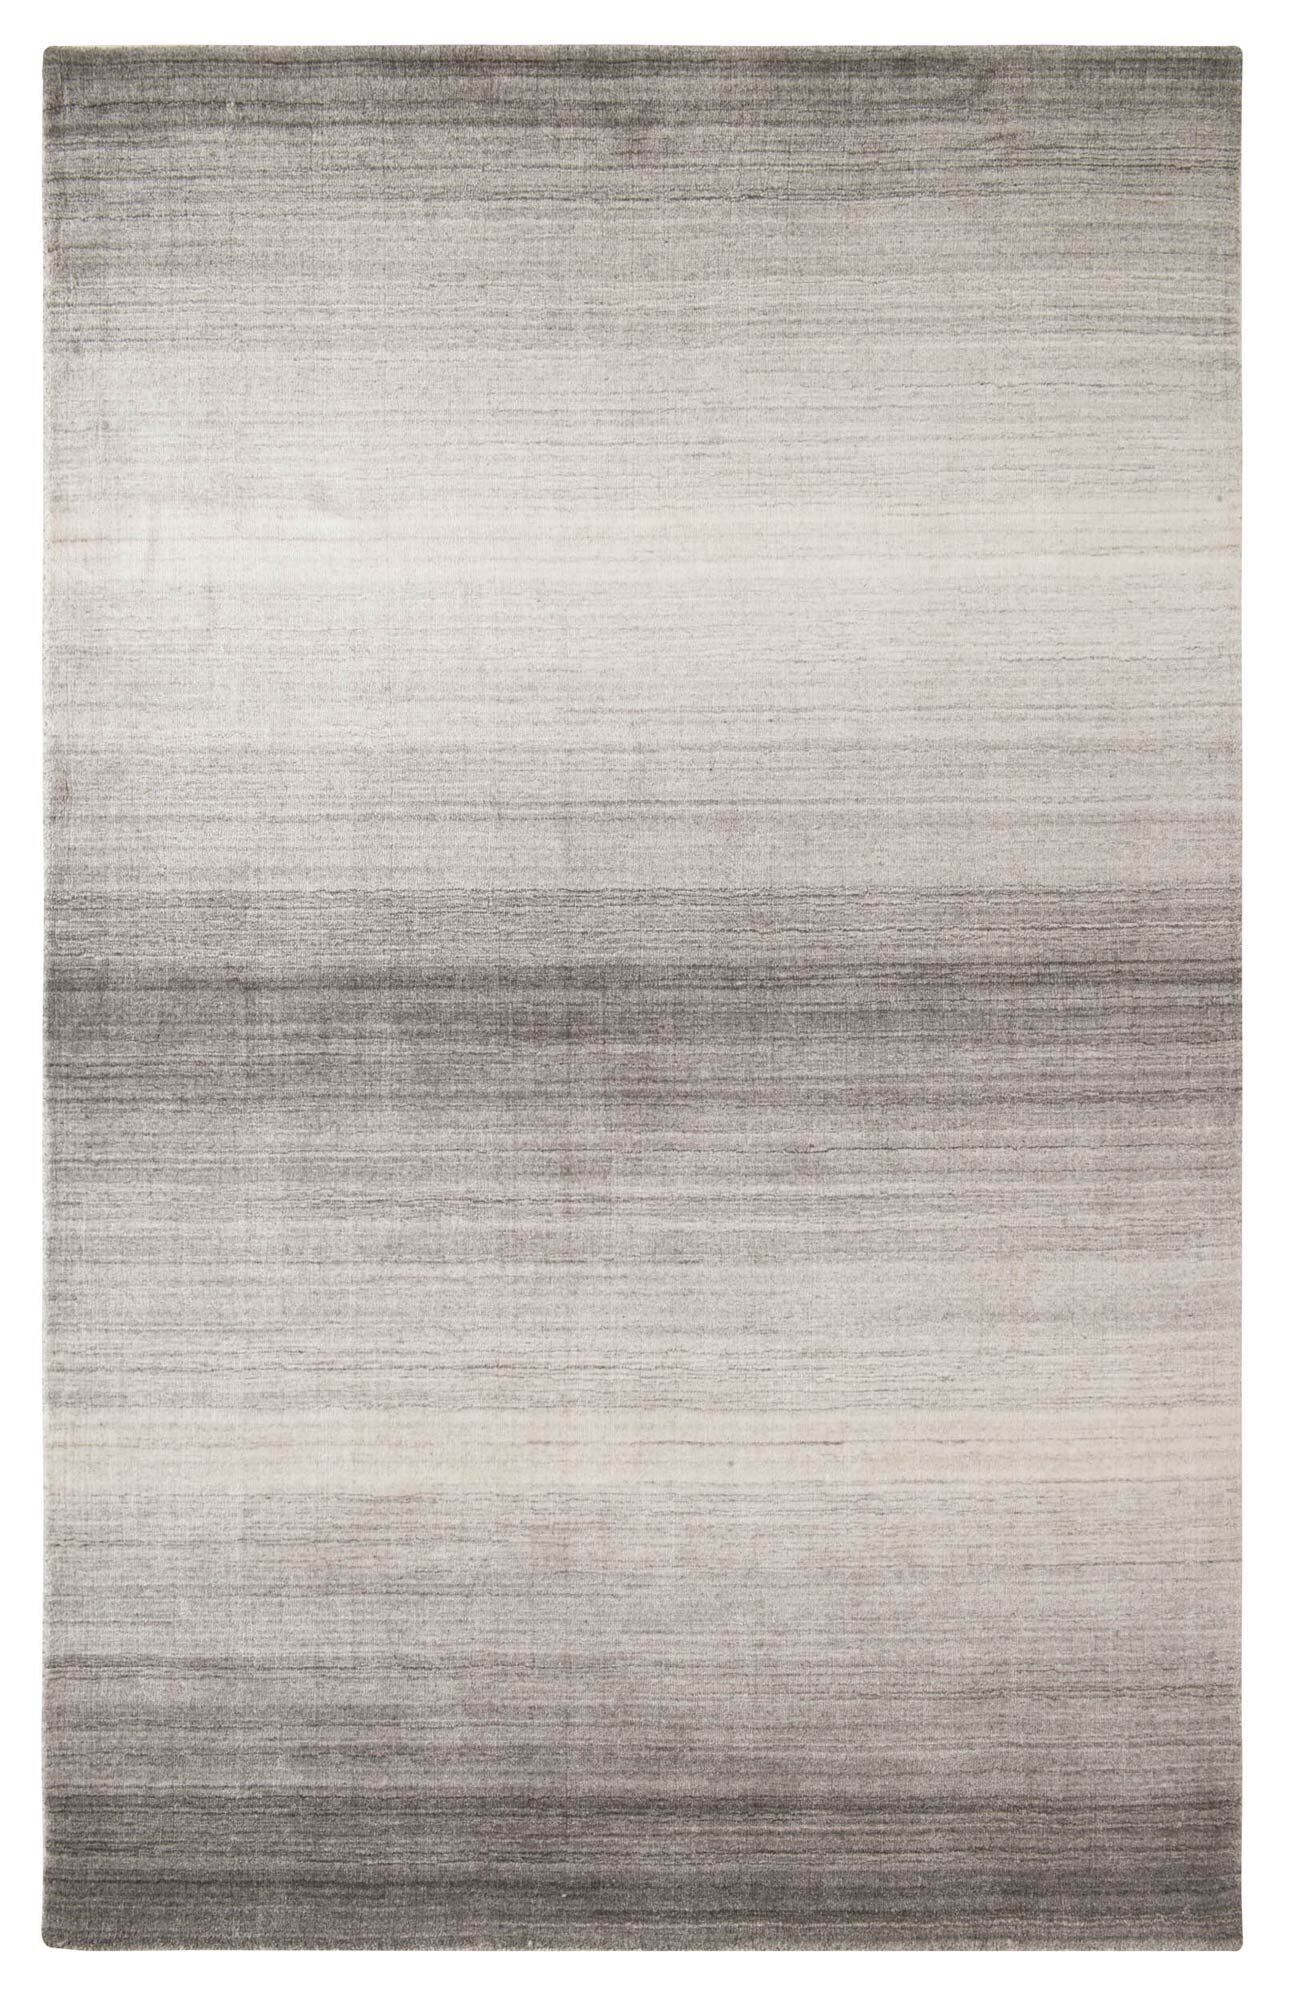 Shadow Hand-Woven Pewter Area Rug Rug Size: 3' x 5'